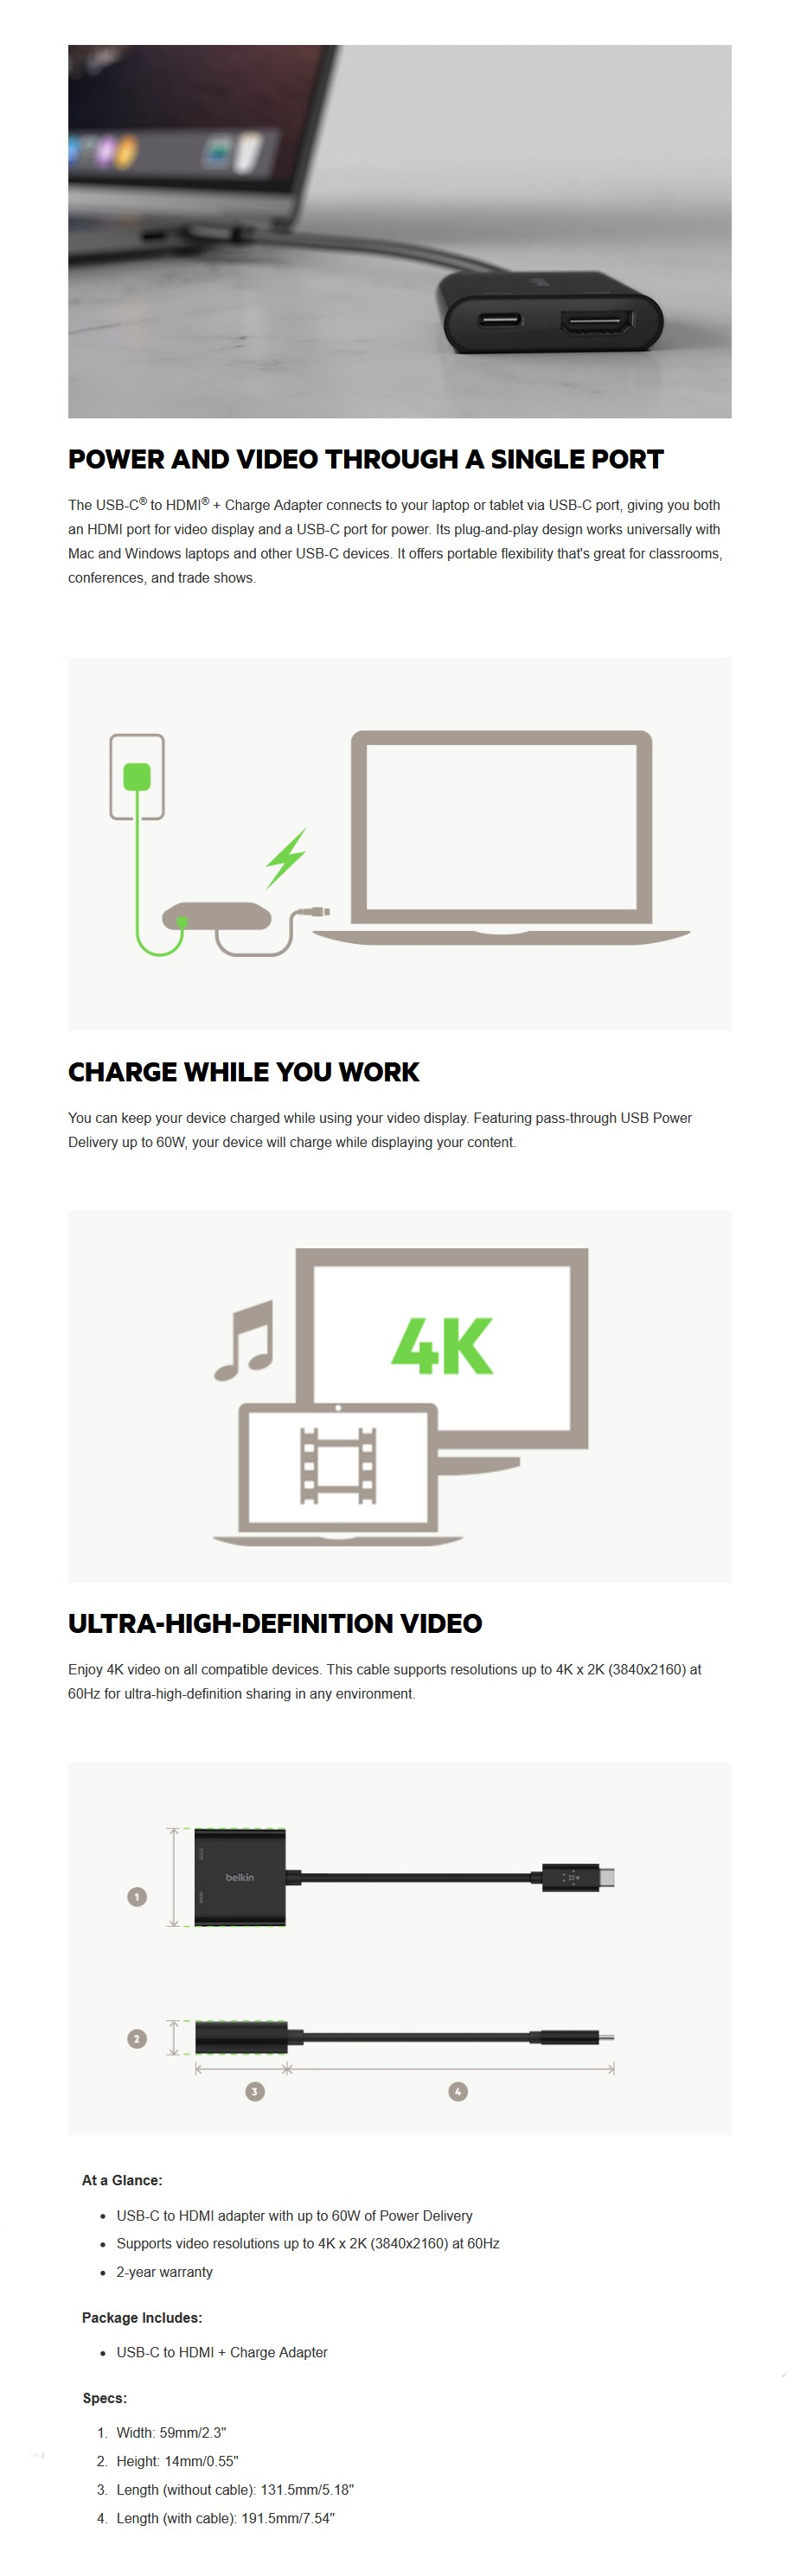 Belkin USB-C to HDMI + Charge Adapter - Overview 1